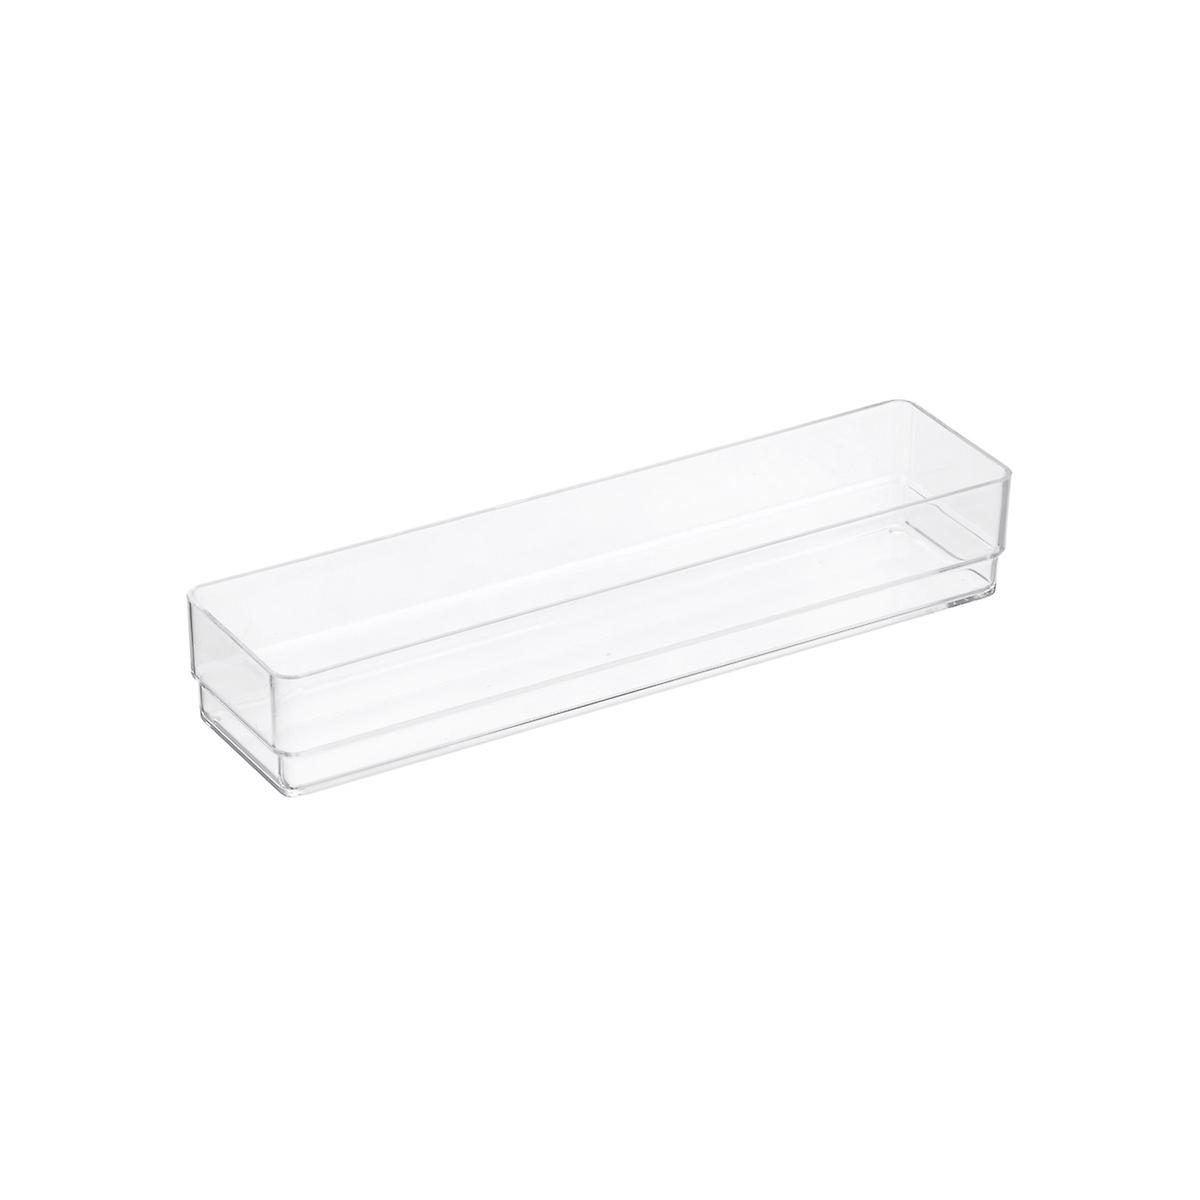 Acrylic Office Drawer Organizers The Container Store